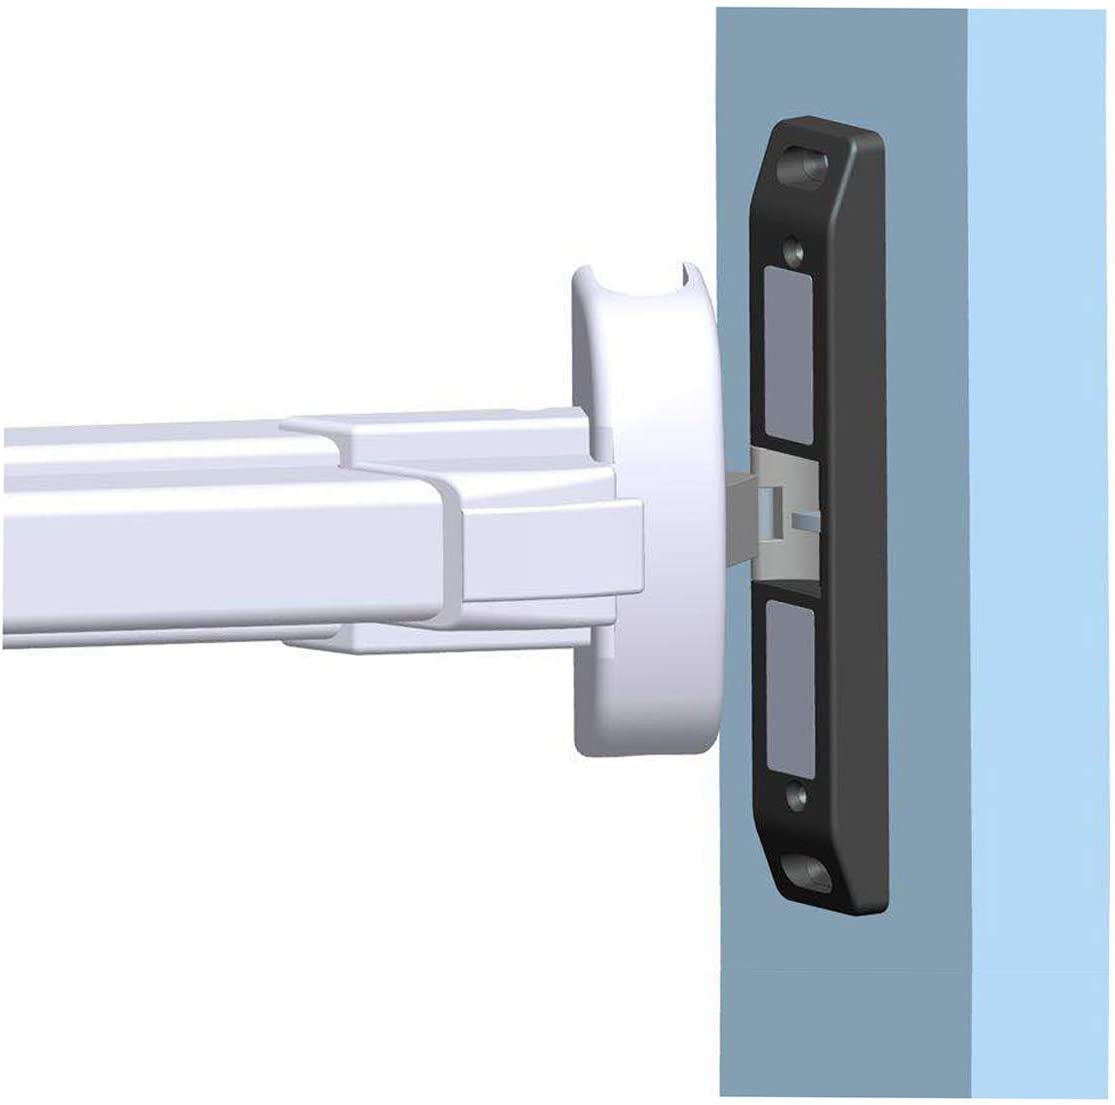 Access Control Kit With Electric Strike Lock Remote Control For Fire Exit Door With Push Bar Home & Kitchen